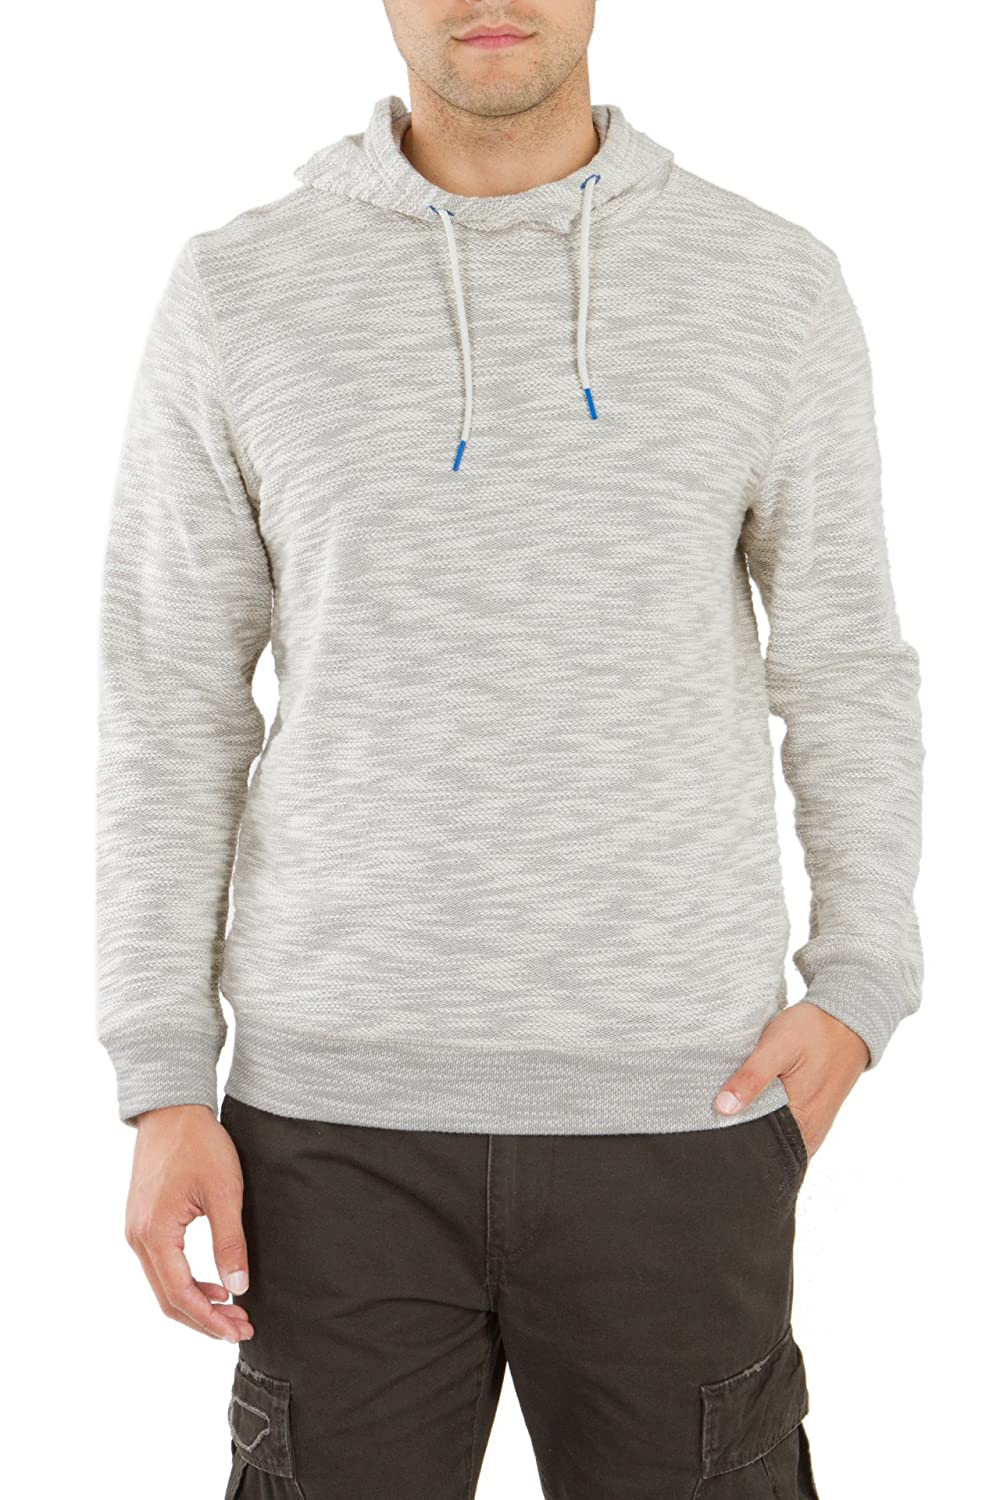 UNIONBAY Men's Long Sleeve French Terry Pullover Hoodie Sweatshirt Unionbay Young Men's Y3104BH